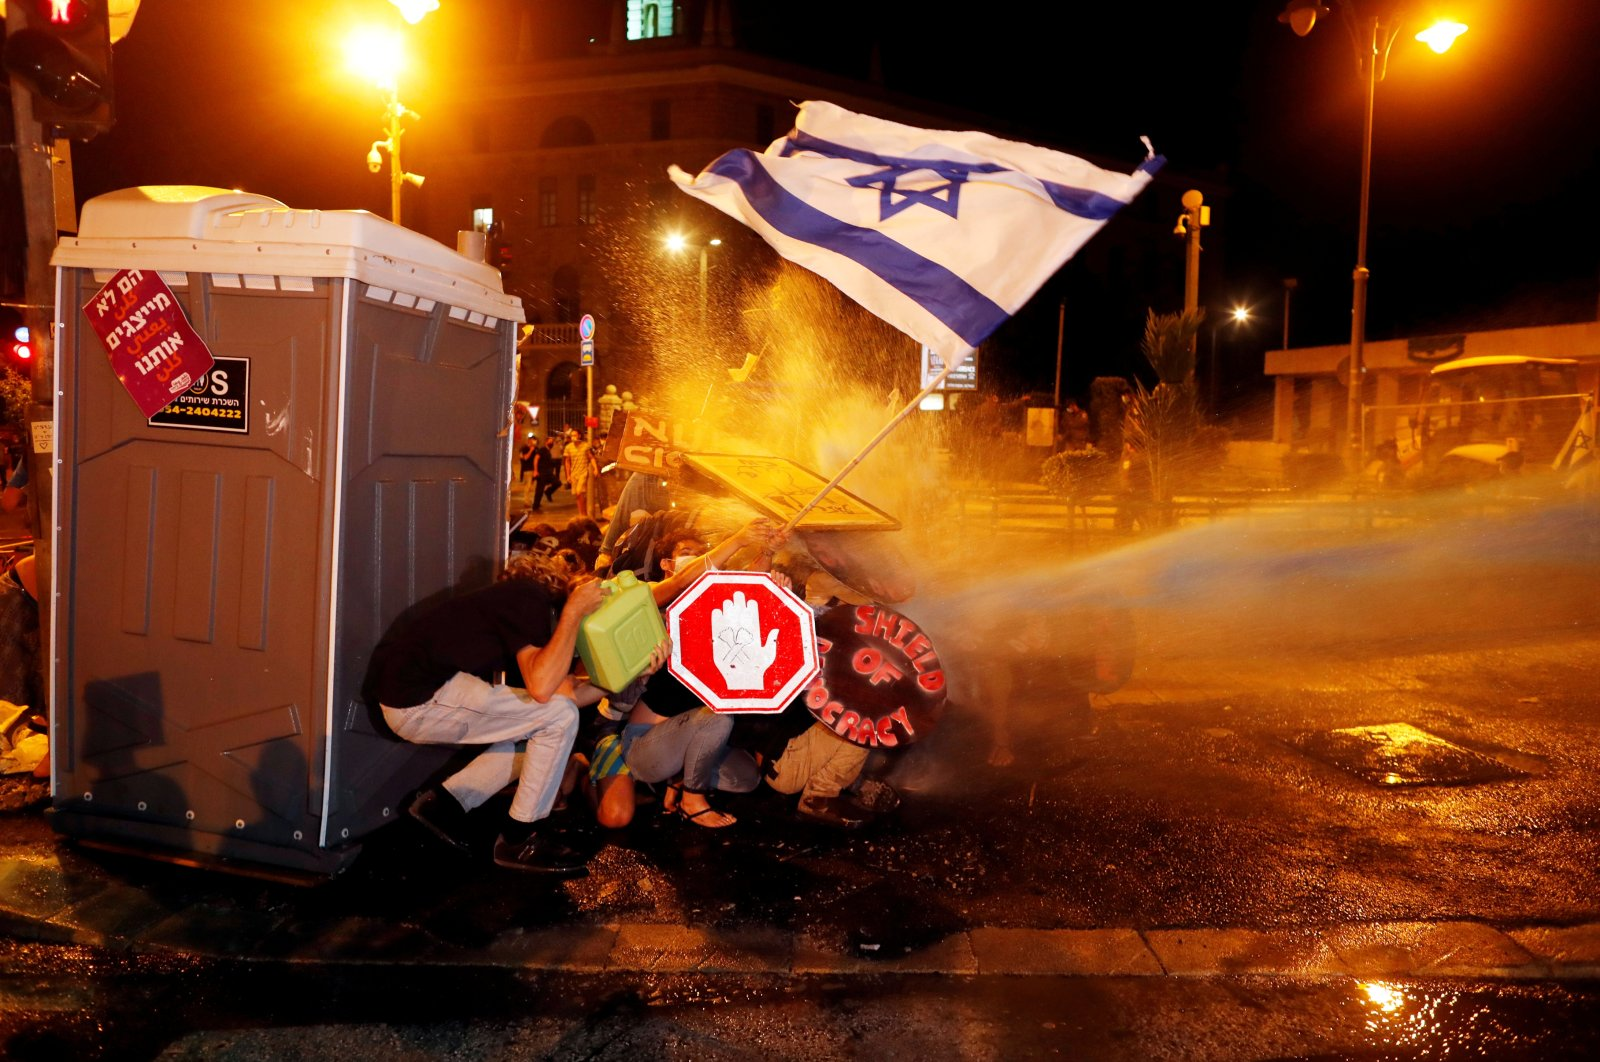 Police use water cannons during a protest against Israeli Prime Minister Benjamin Netanyahu's alleged corruption and his government's handling of the coronavirus crisis, near his residence in Jerusalem on July 26, 2020. (Reuters Photo)